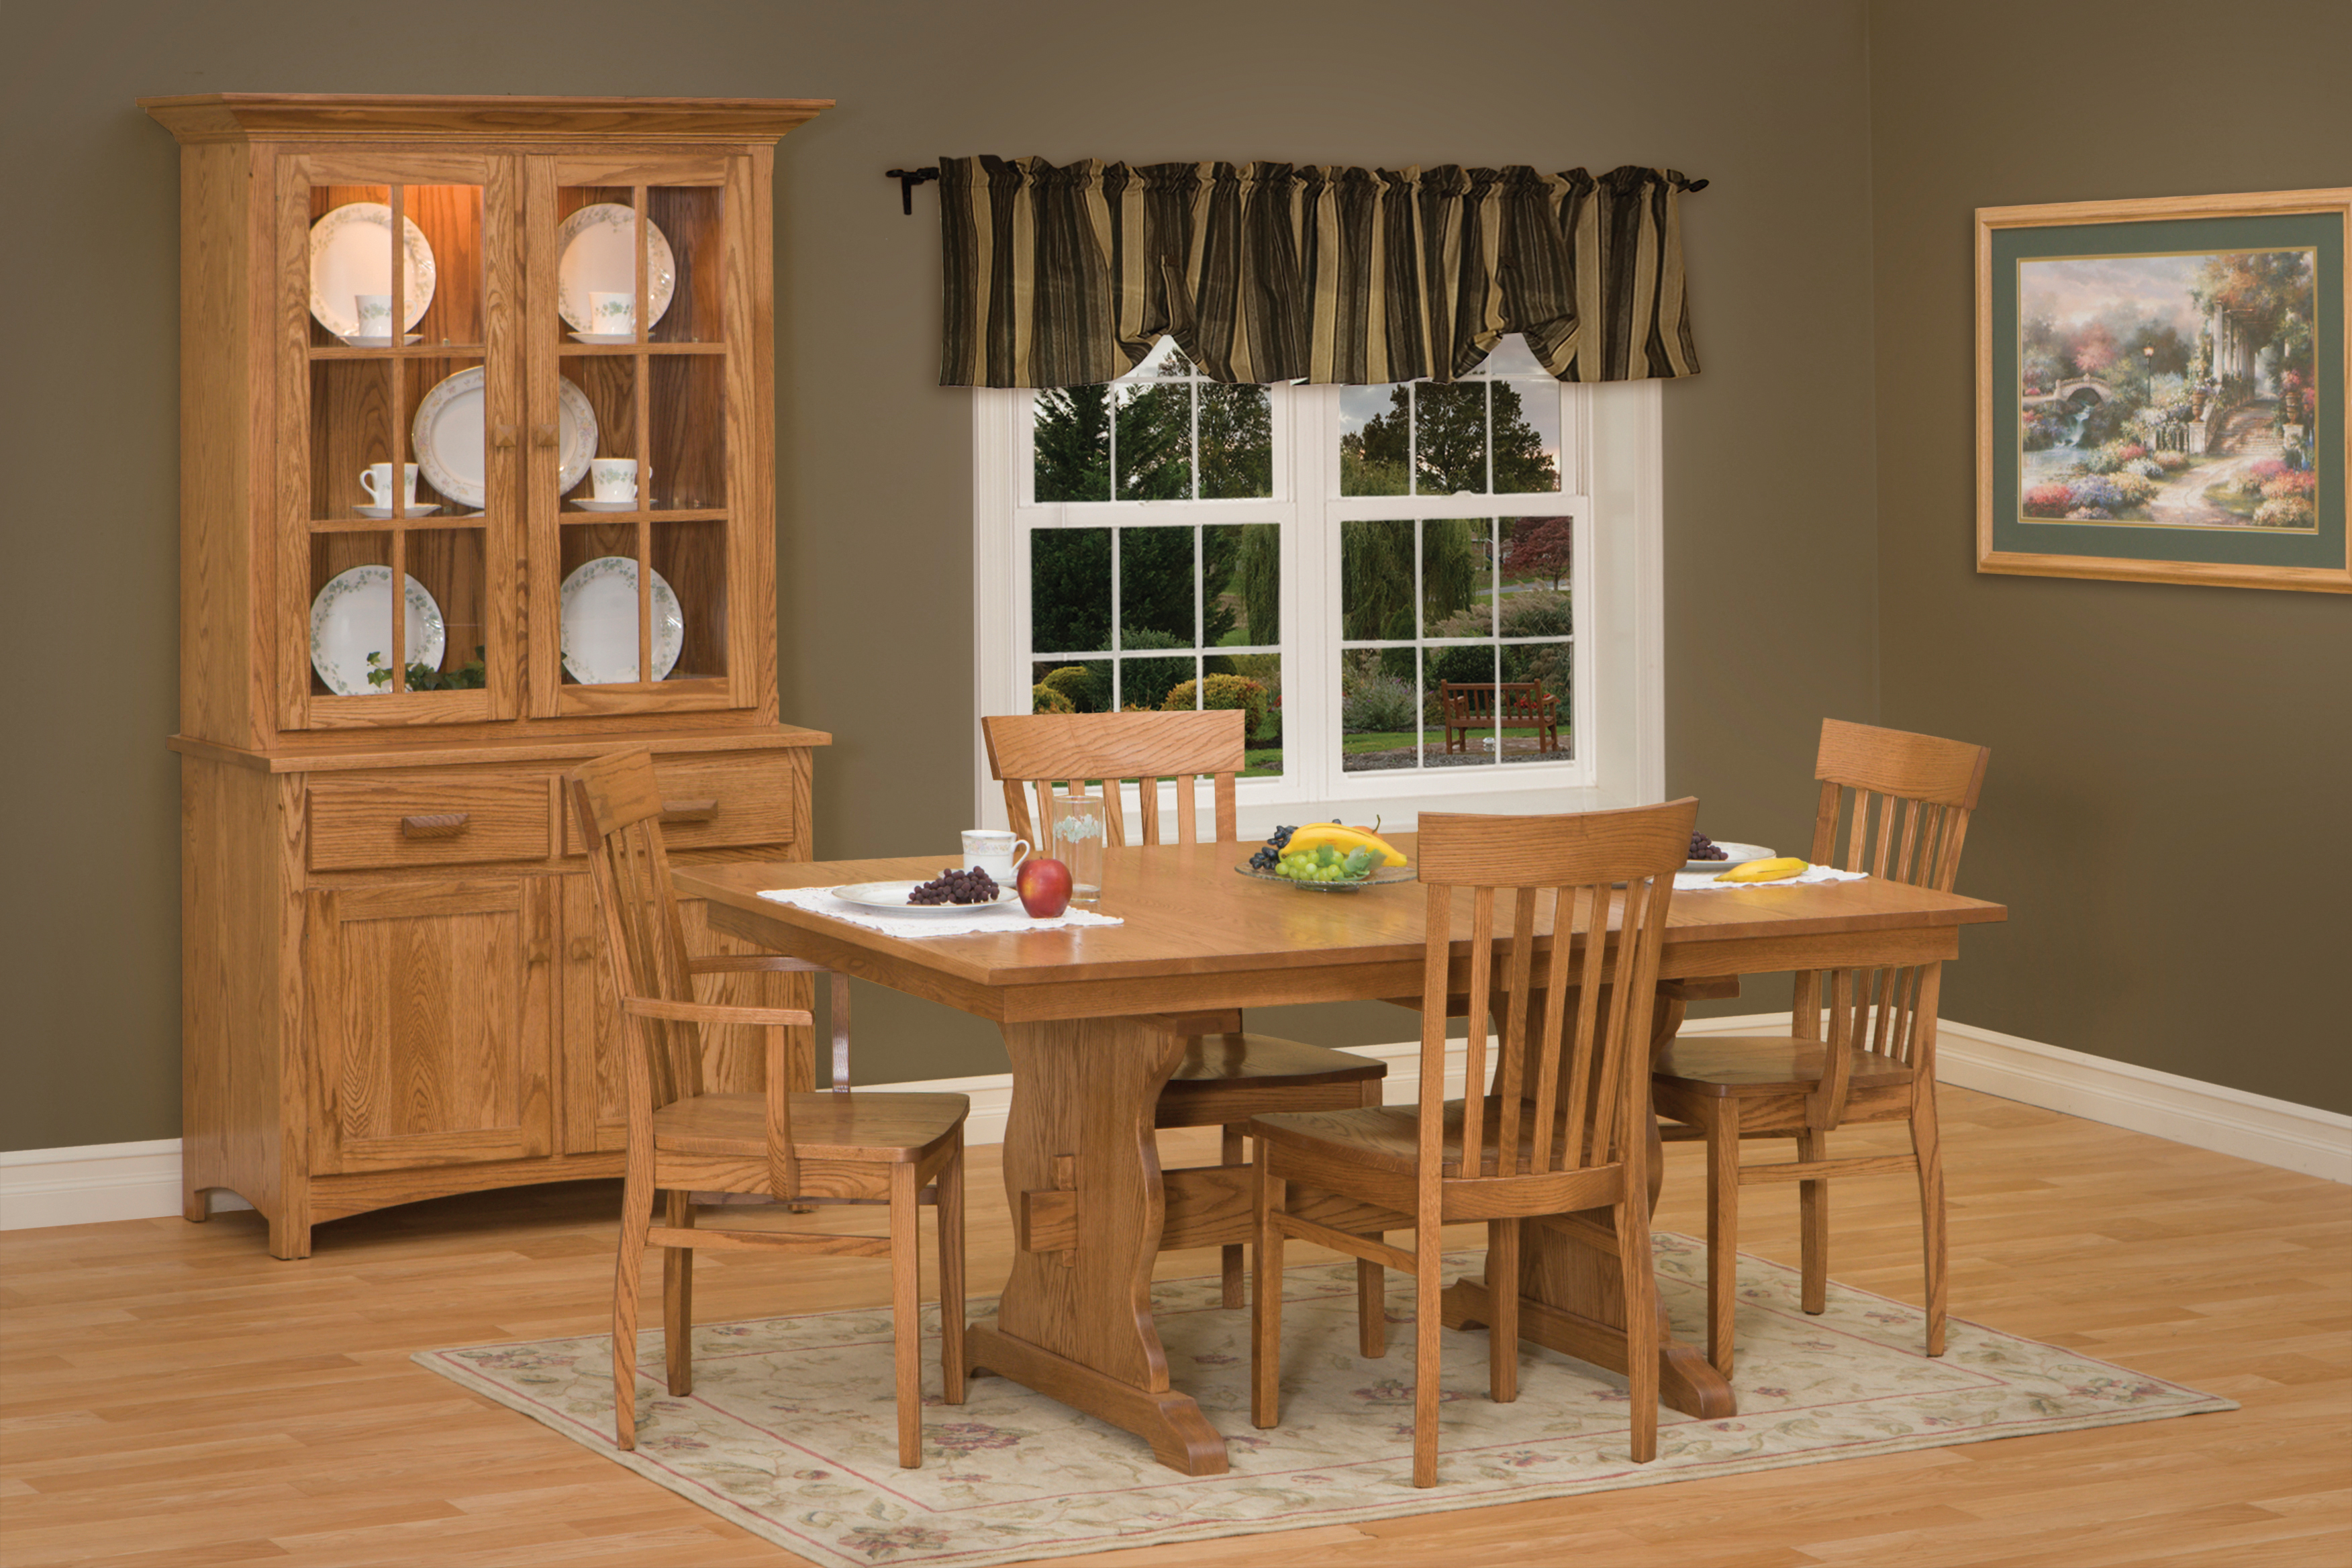 Kitchen Collection Stanley K Tanger Blvd Lancaster Pa